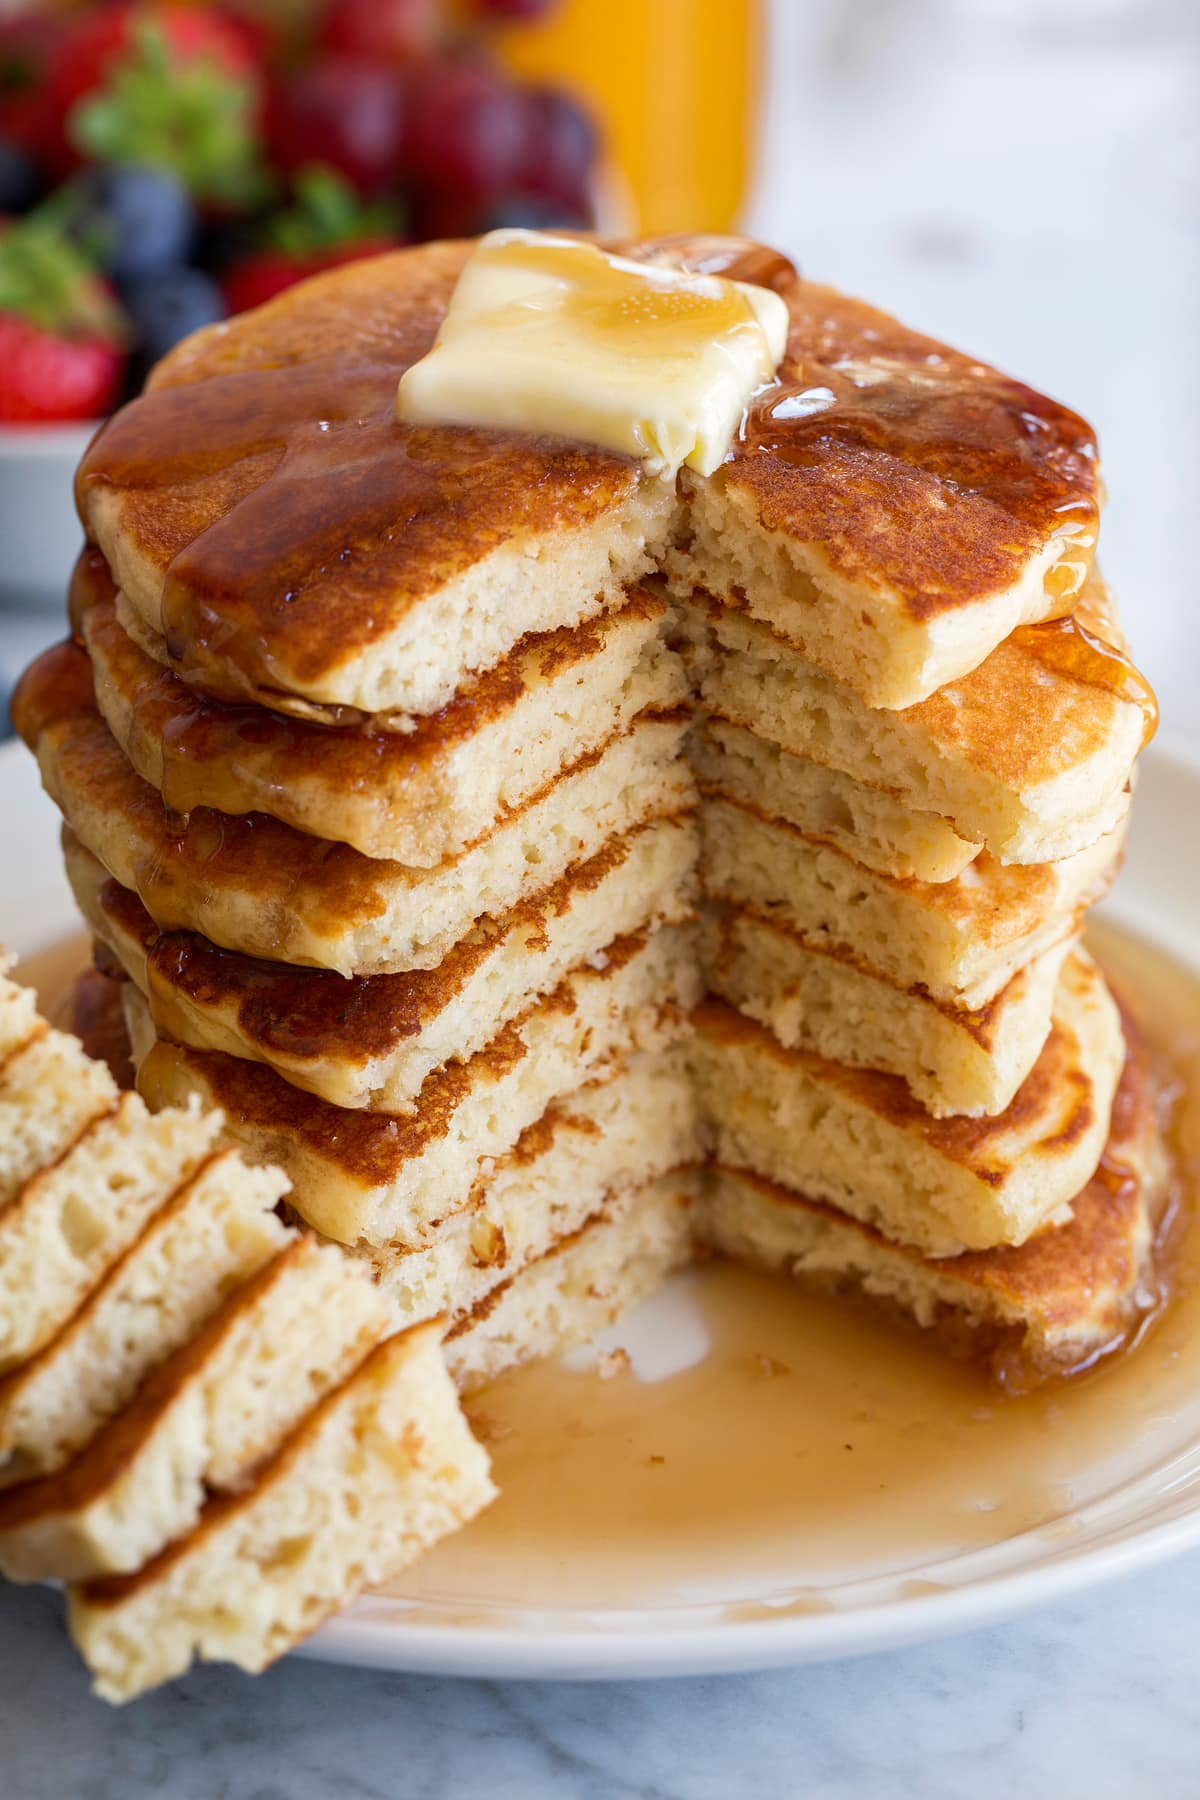 Stack of pancakes with one side cut to show interior.